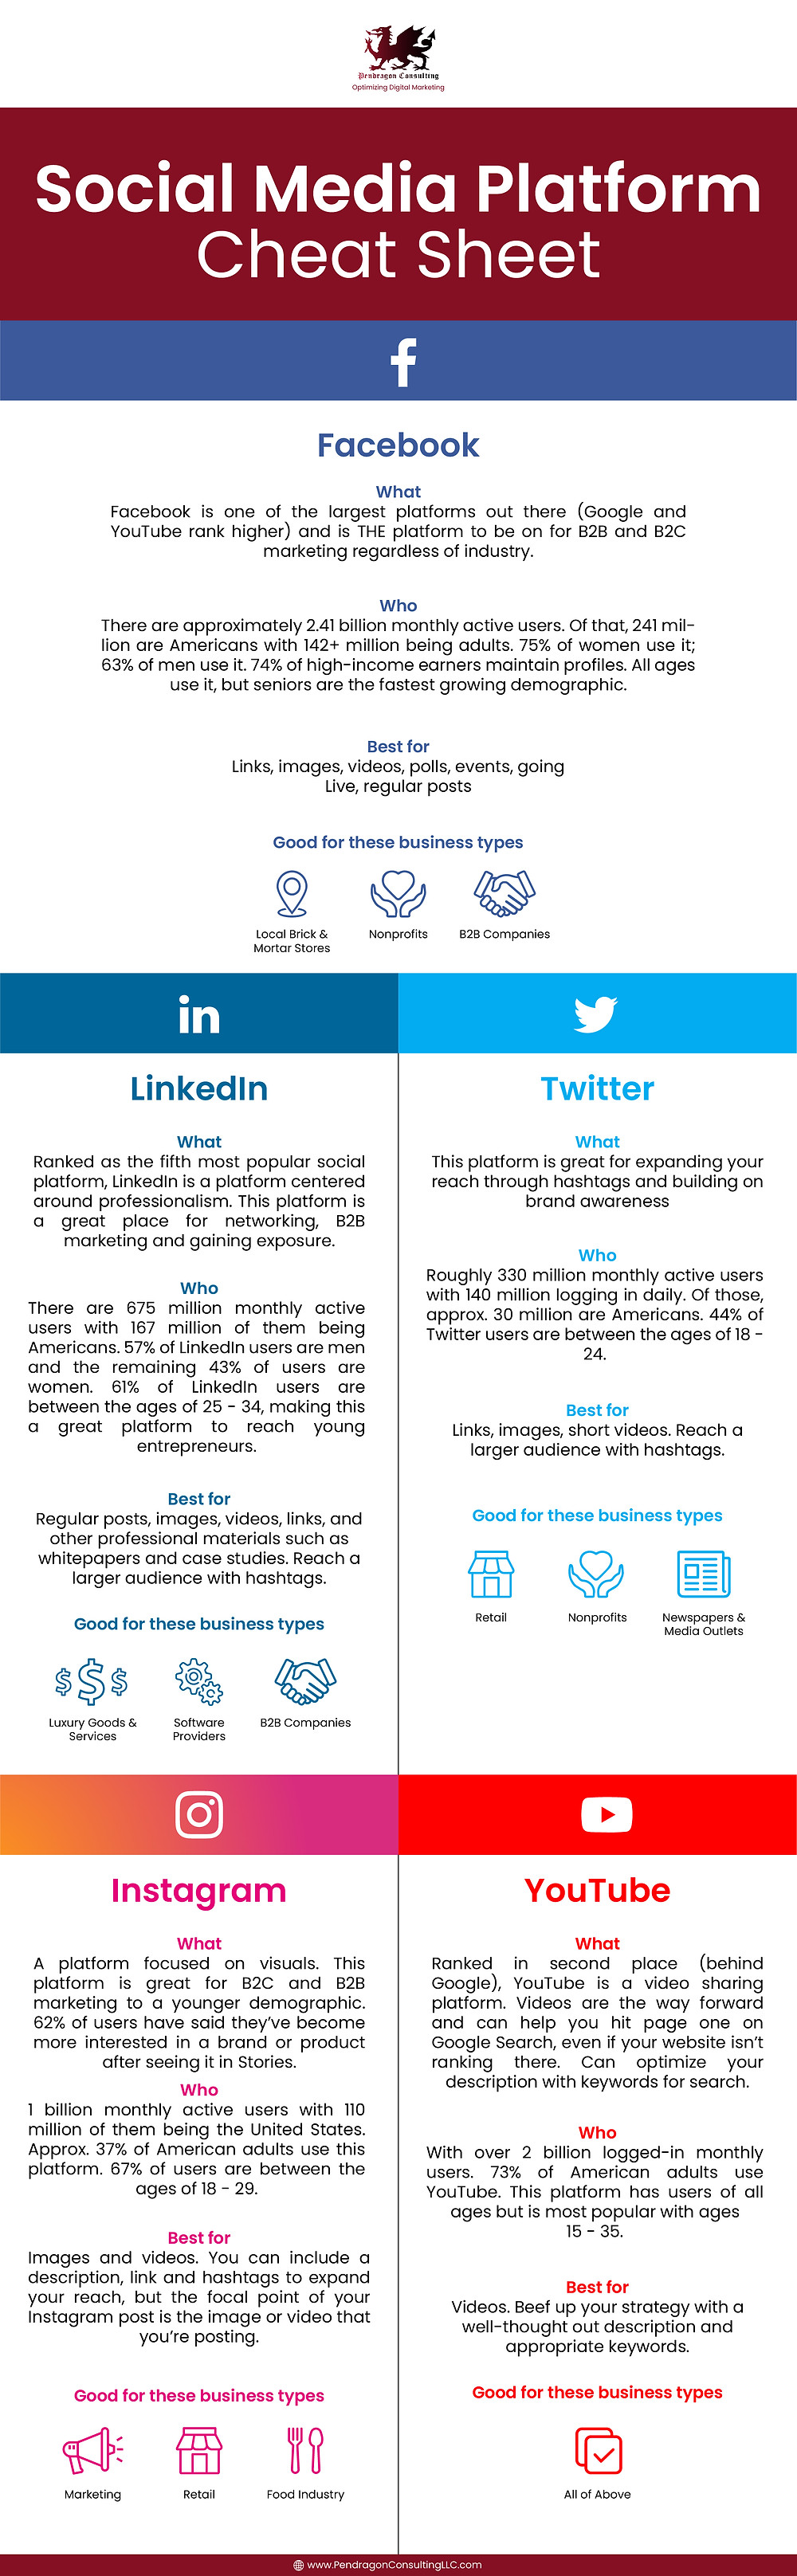 cheat sheet for social media marketing